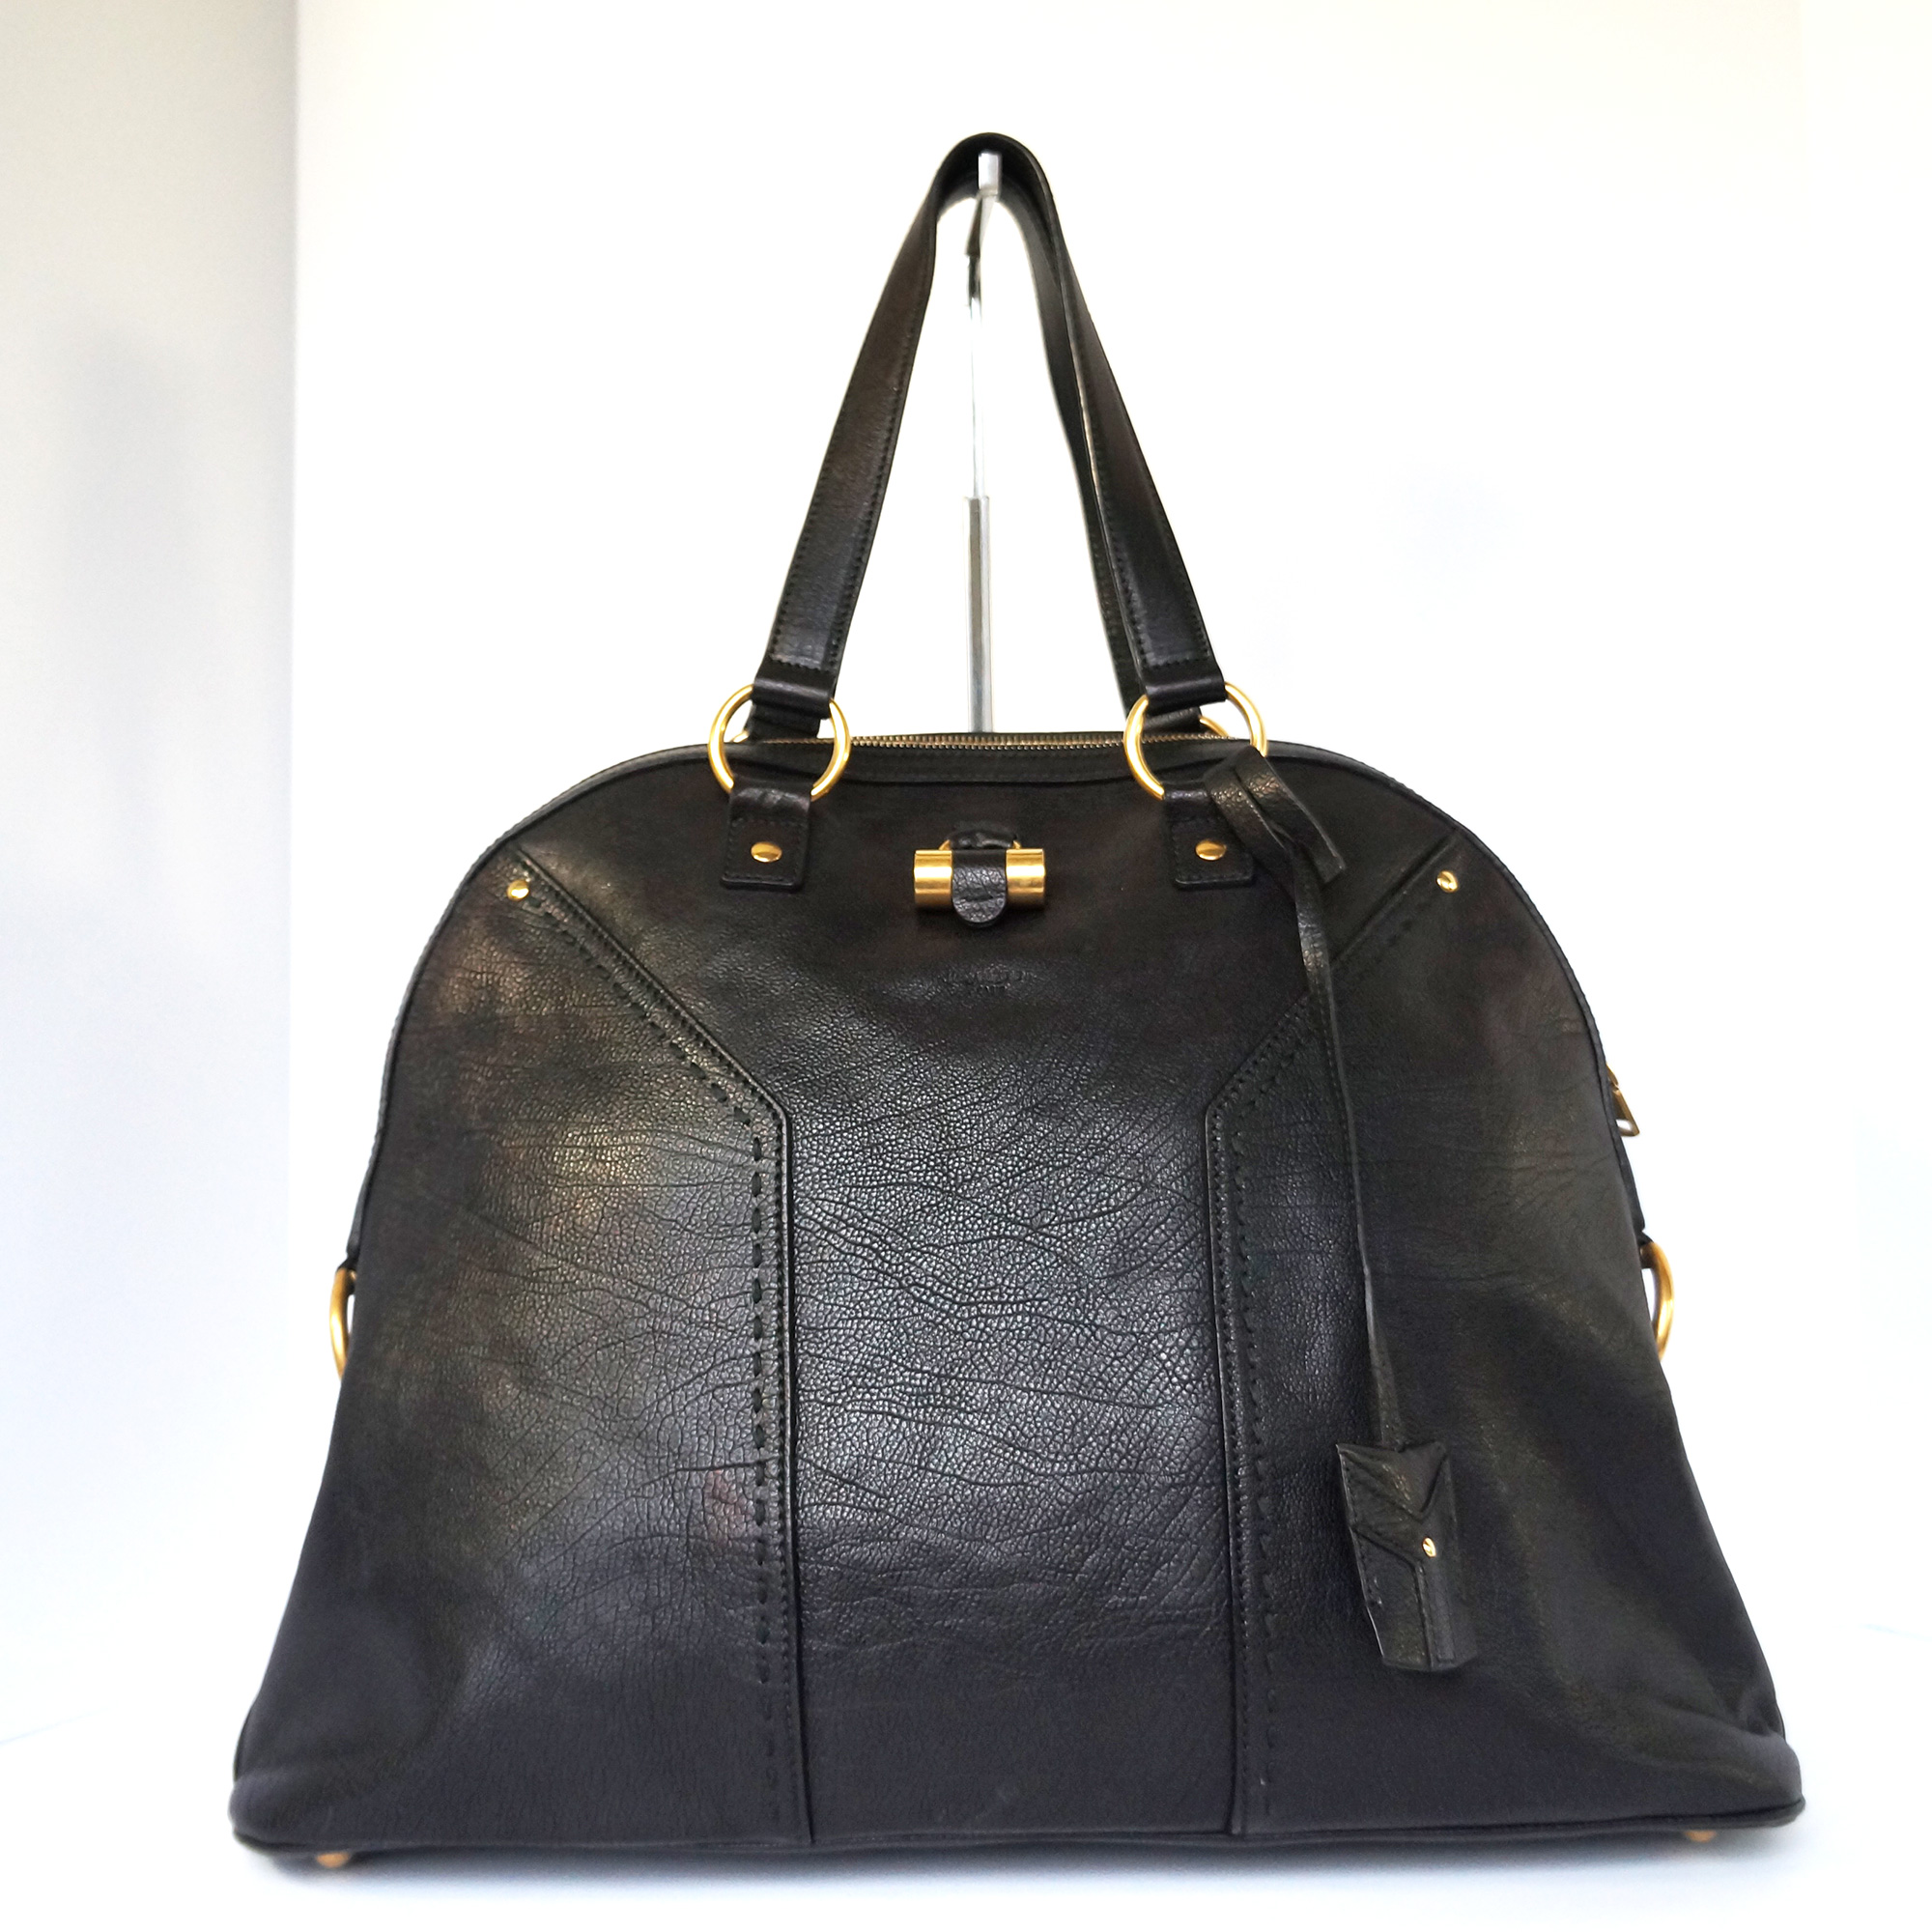 e535349a6978 Ysl yves saint laurent muse dome satchel bag black leather jpg 2000x2000 Ysl  muse